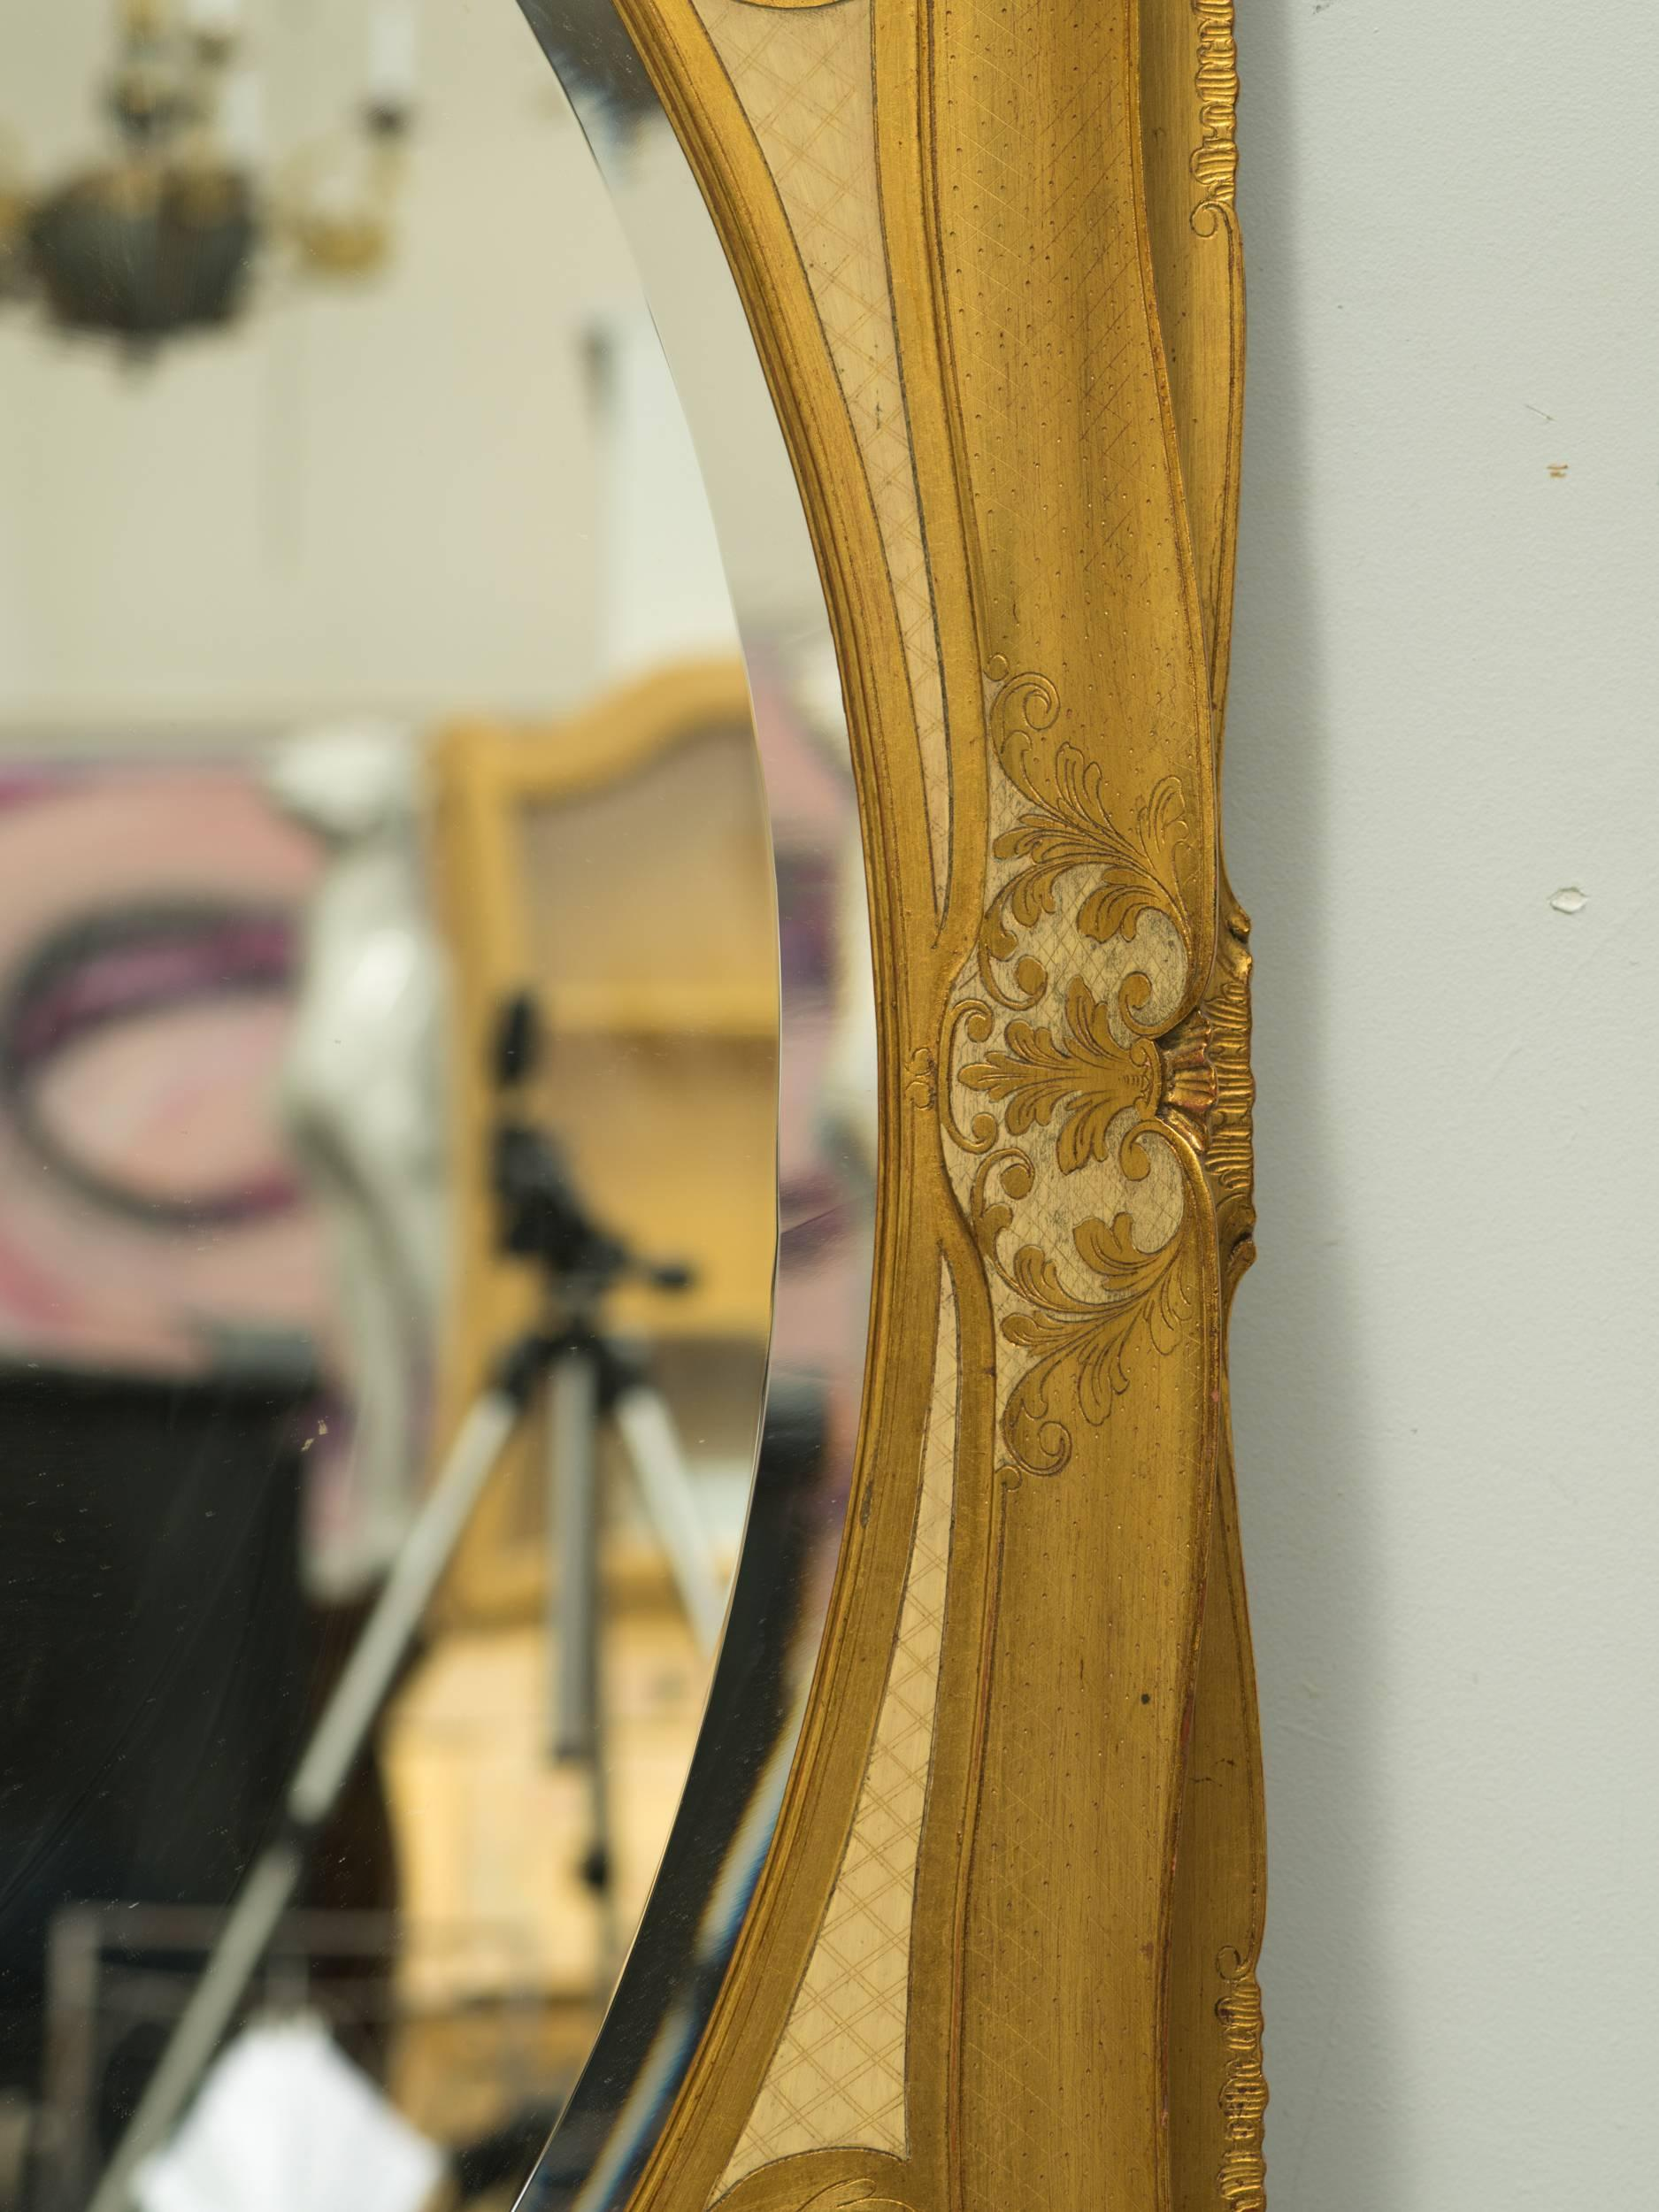 Large Giltwood Florentine Wall Mirror For Sale at 1stdibs